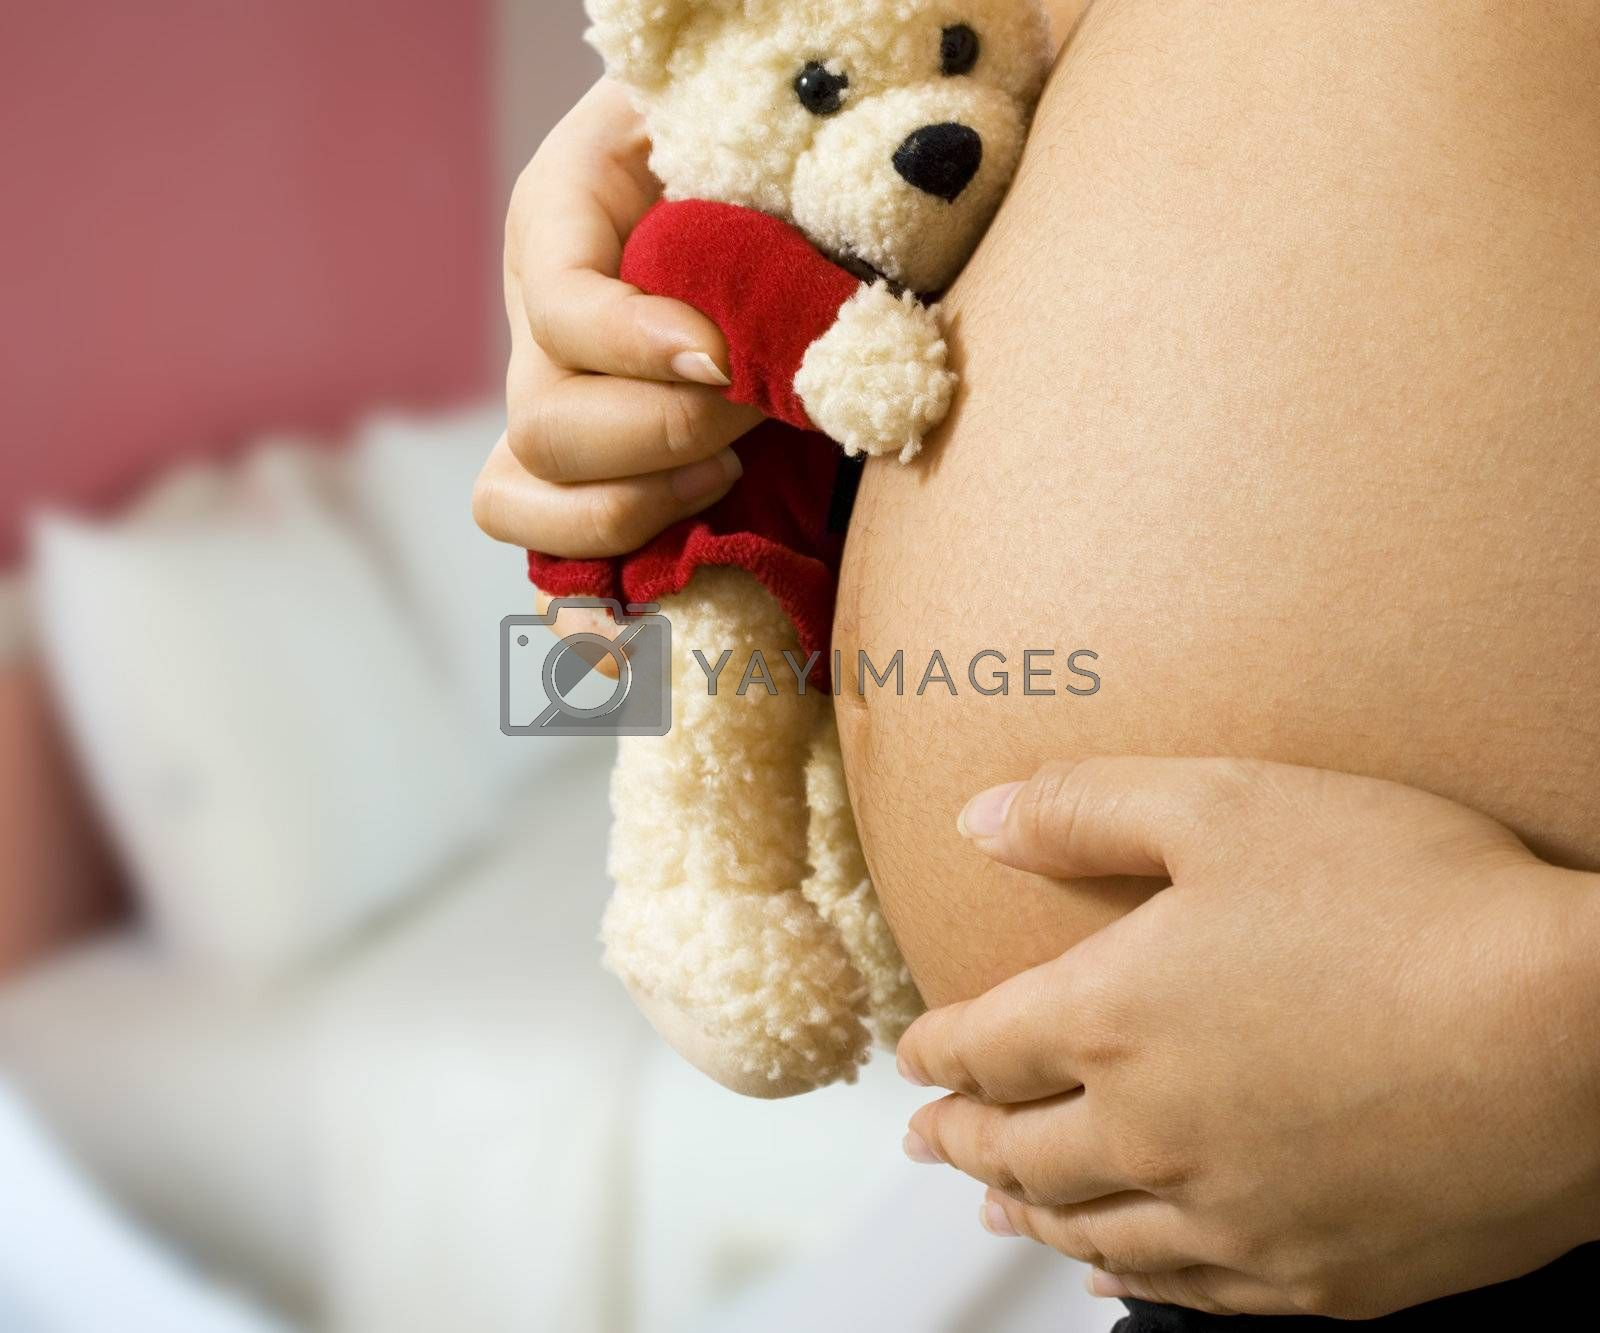 Mom in pregnancy holding a teddy bear in her bedroom